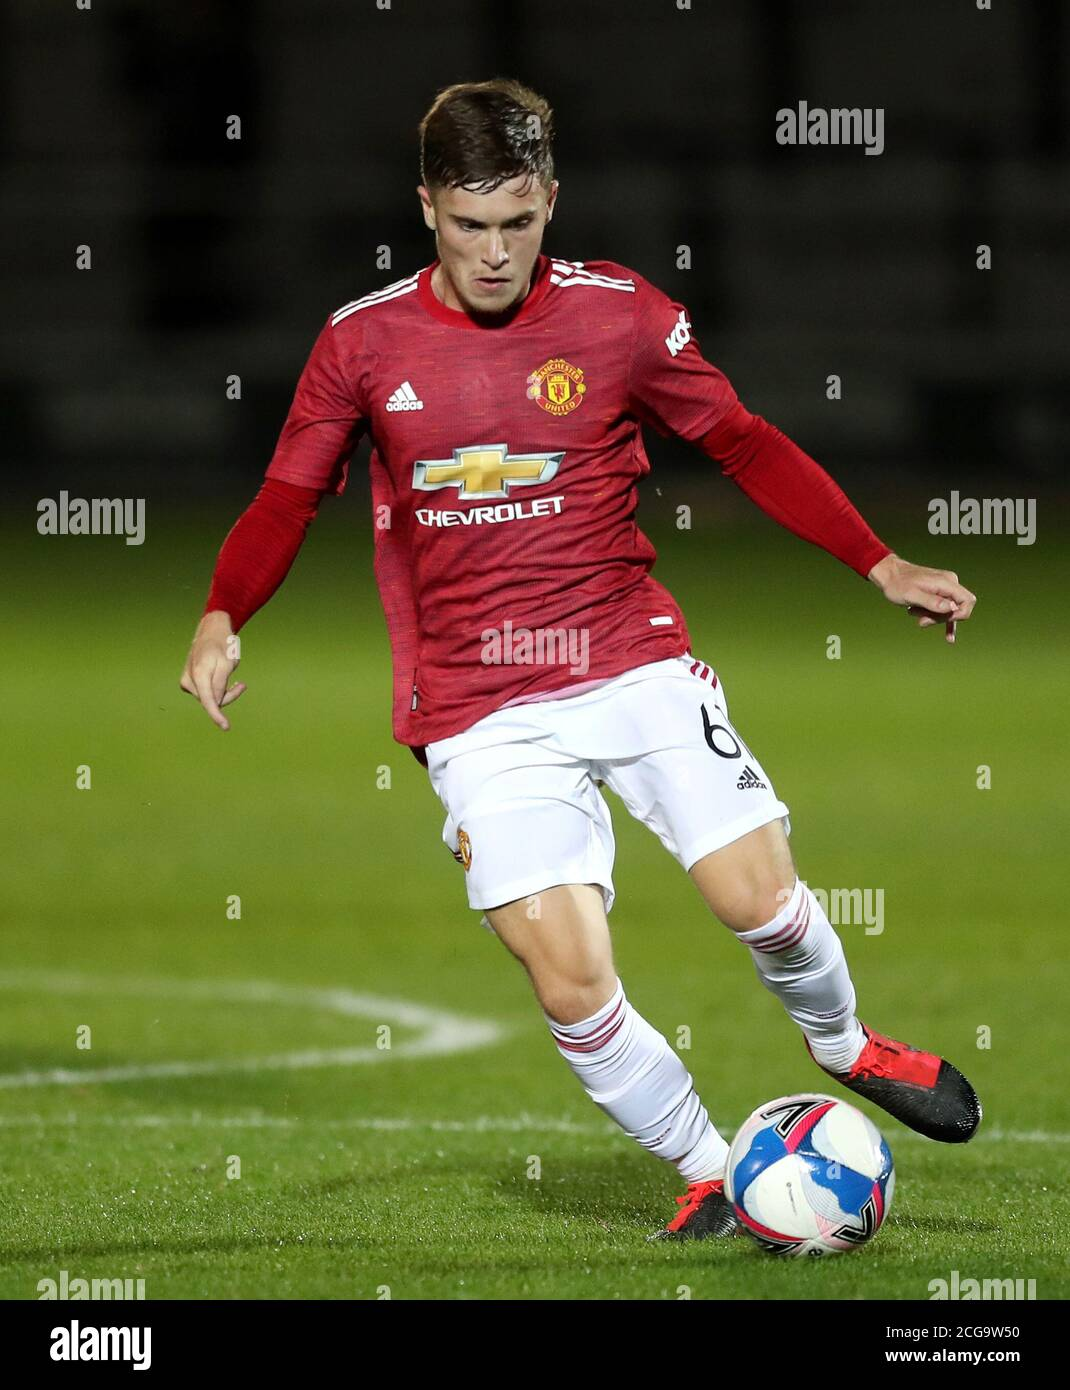 Manchester United's Charlie McCann during the EFL Trophy Northern Group B match at the Peninsula Stadium, Salford Stock Photo - Alamy